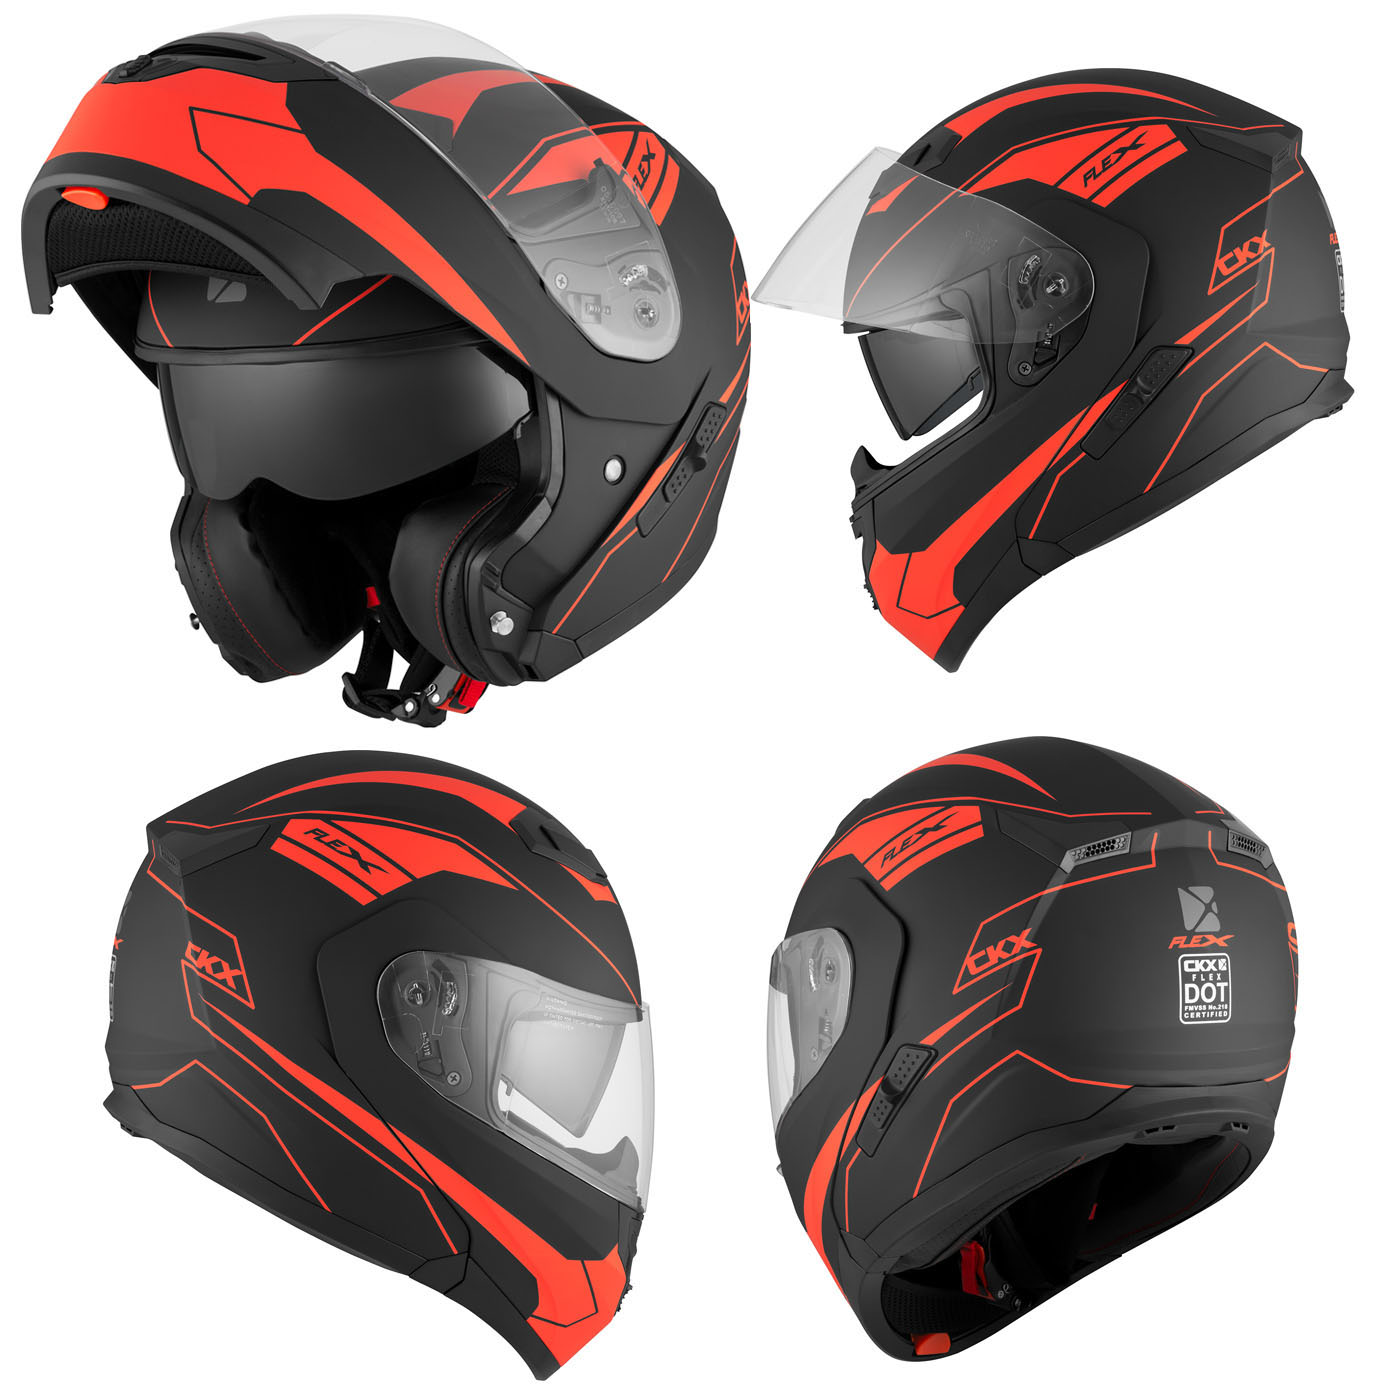 a1dd6aeb Motorcycle Helmet Modular Flip Up CKX Flex RSV Zone Large Mat Red Black  Adult